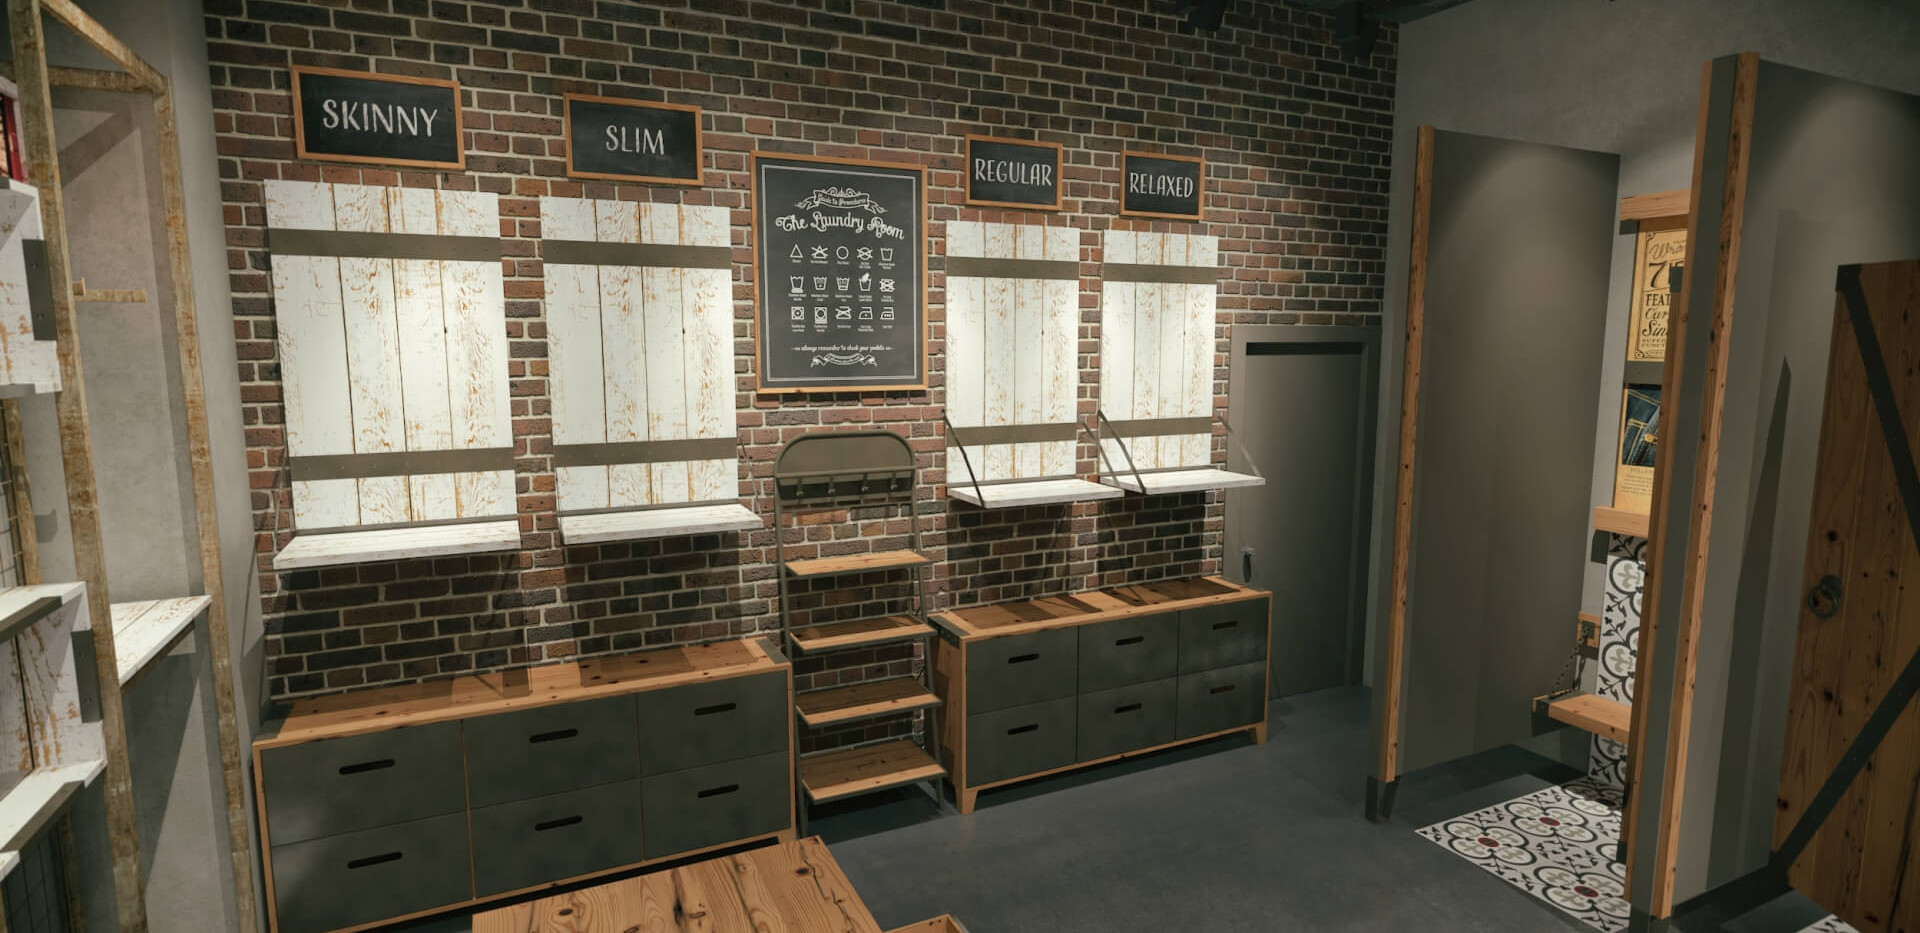 Lee Wrangler - Denim Store Shop Design-5